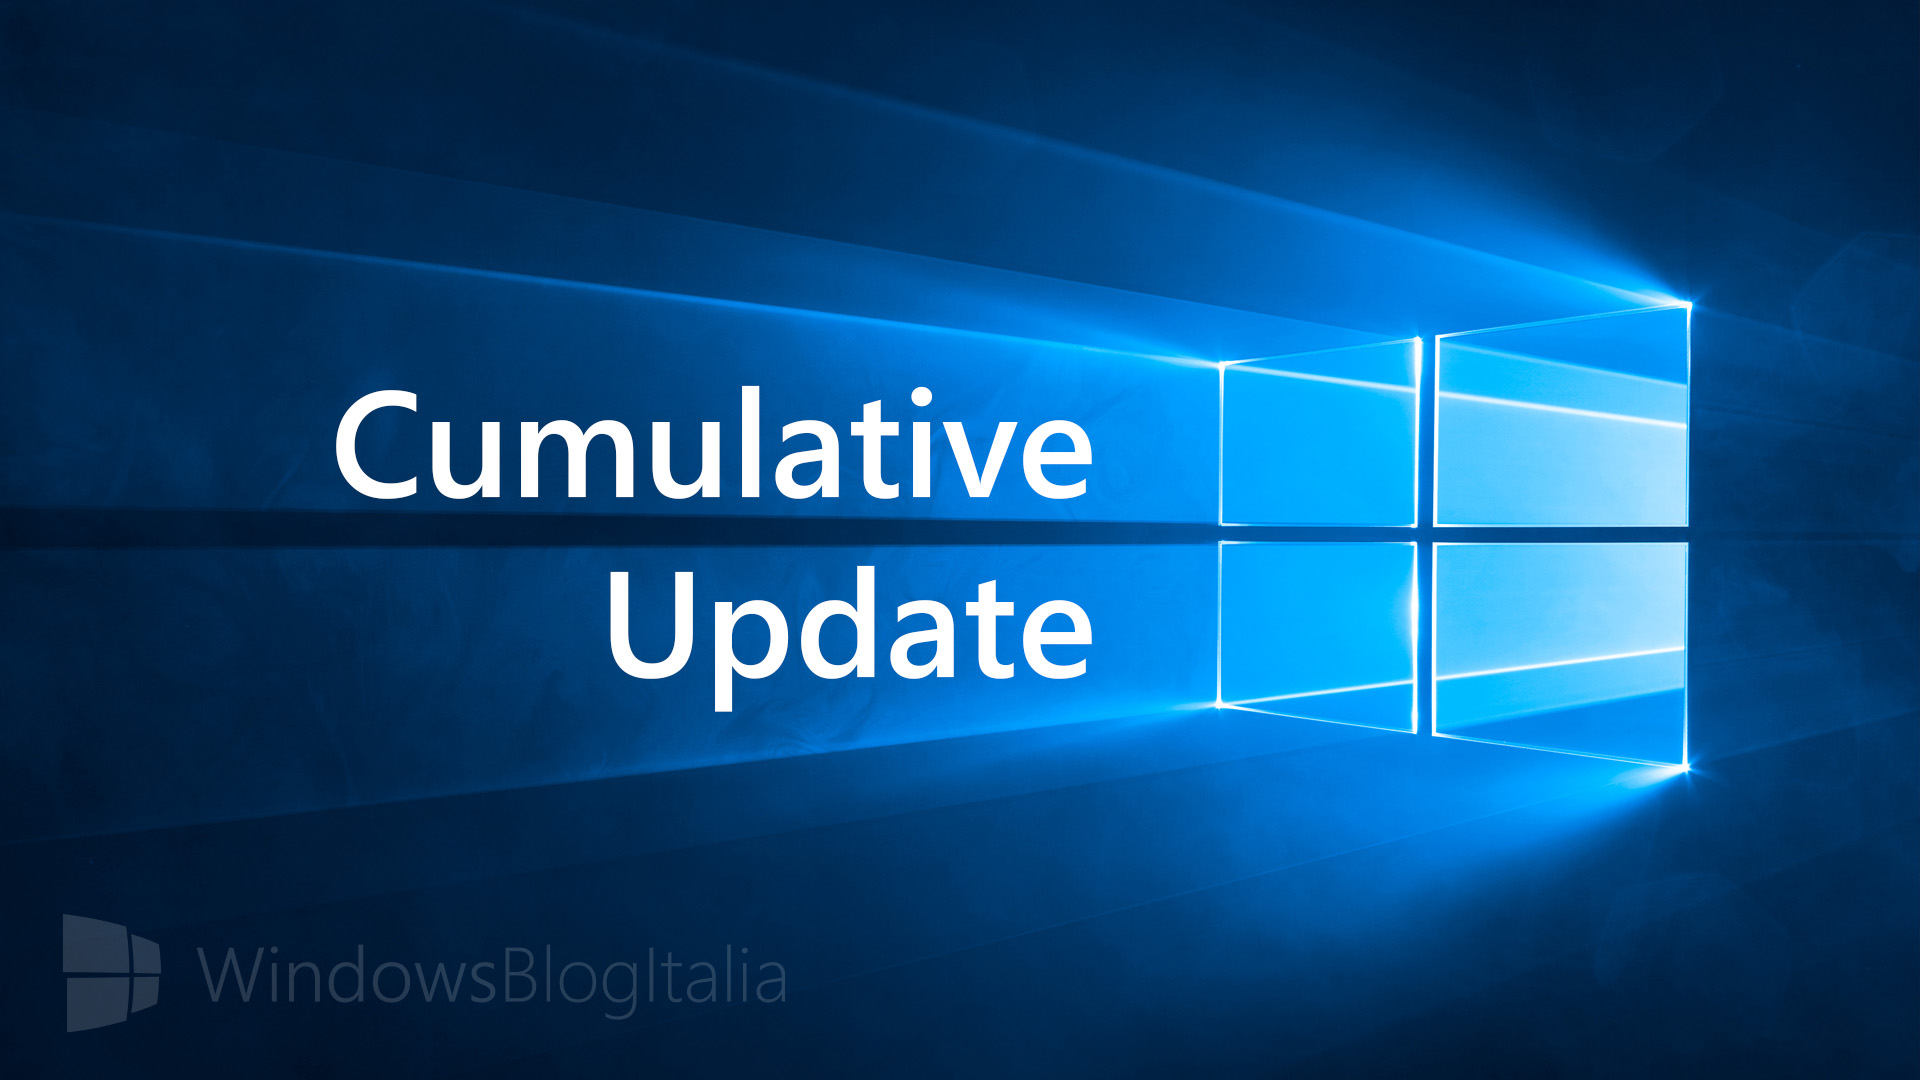 Aggiornamento cumulativo - Windows 10 - PC e tablet